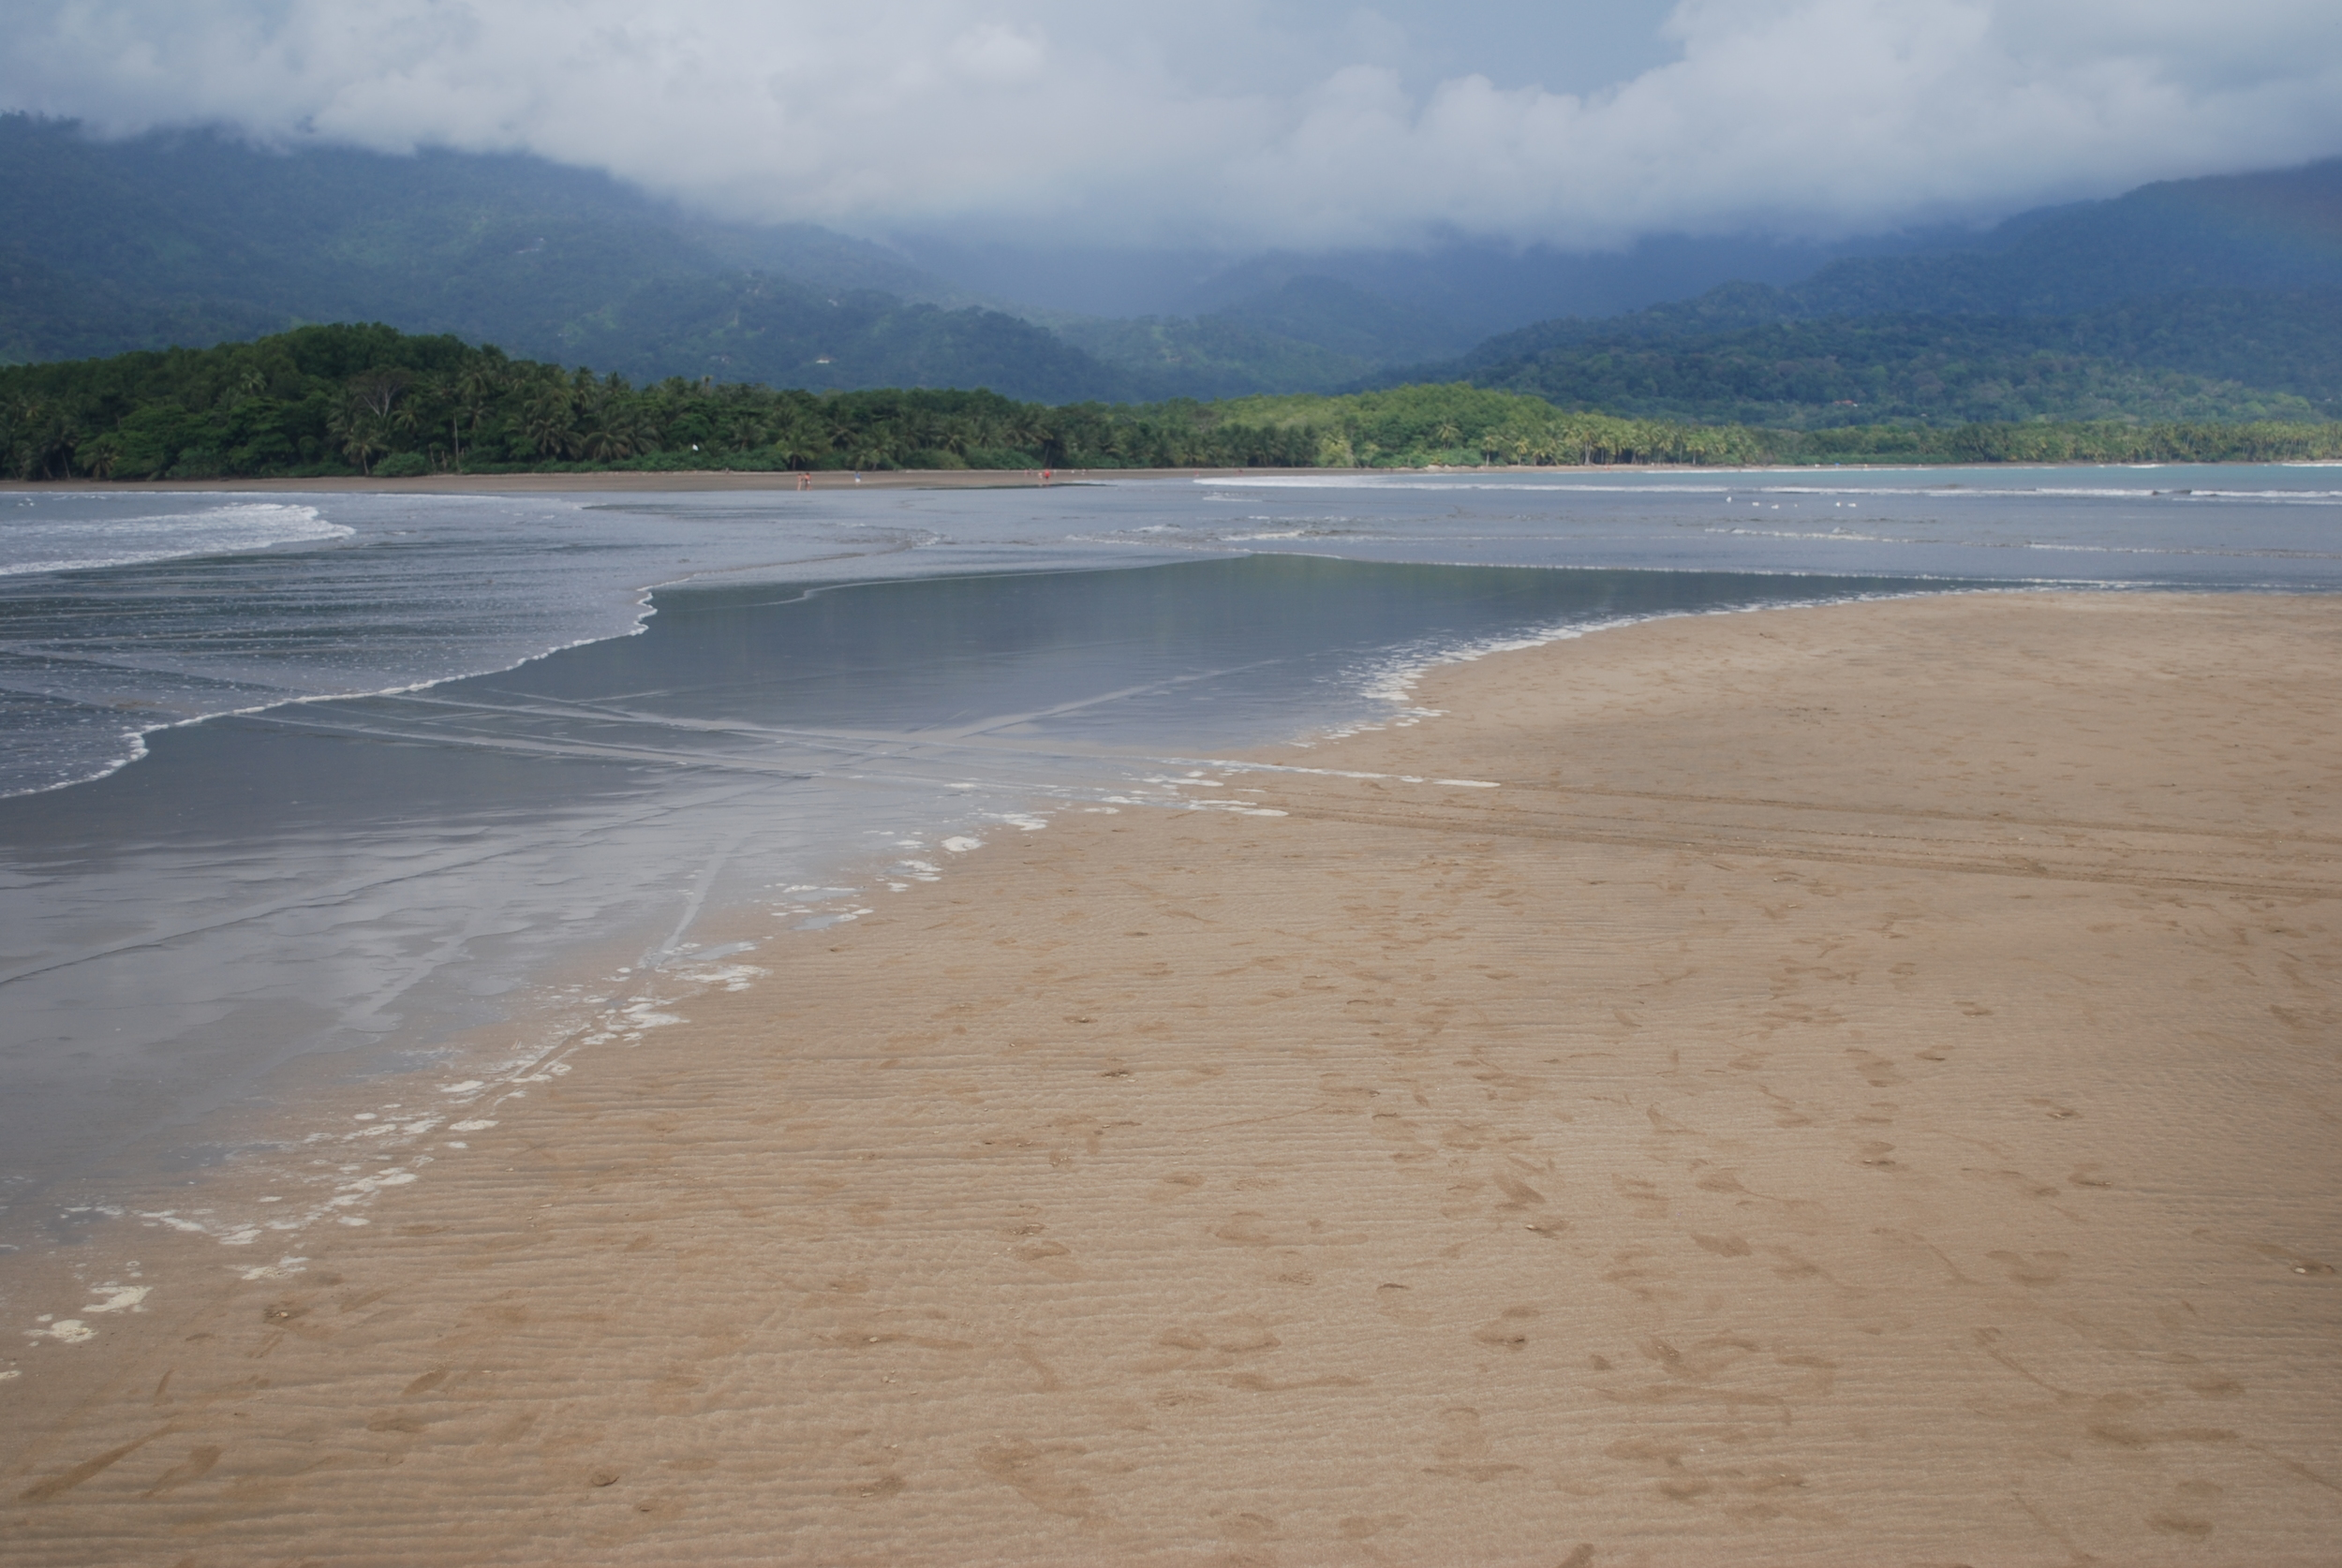 More from the Whale Tail/Marino Ballena